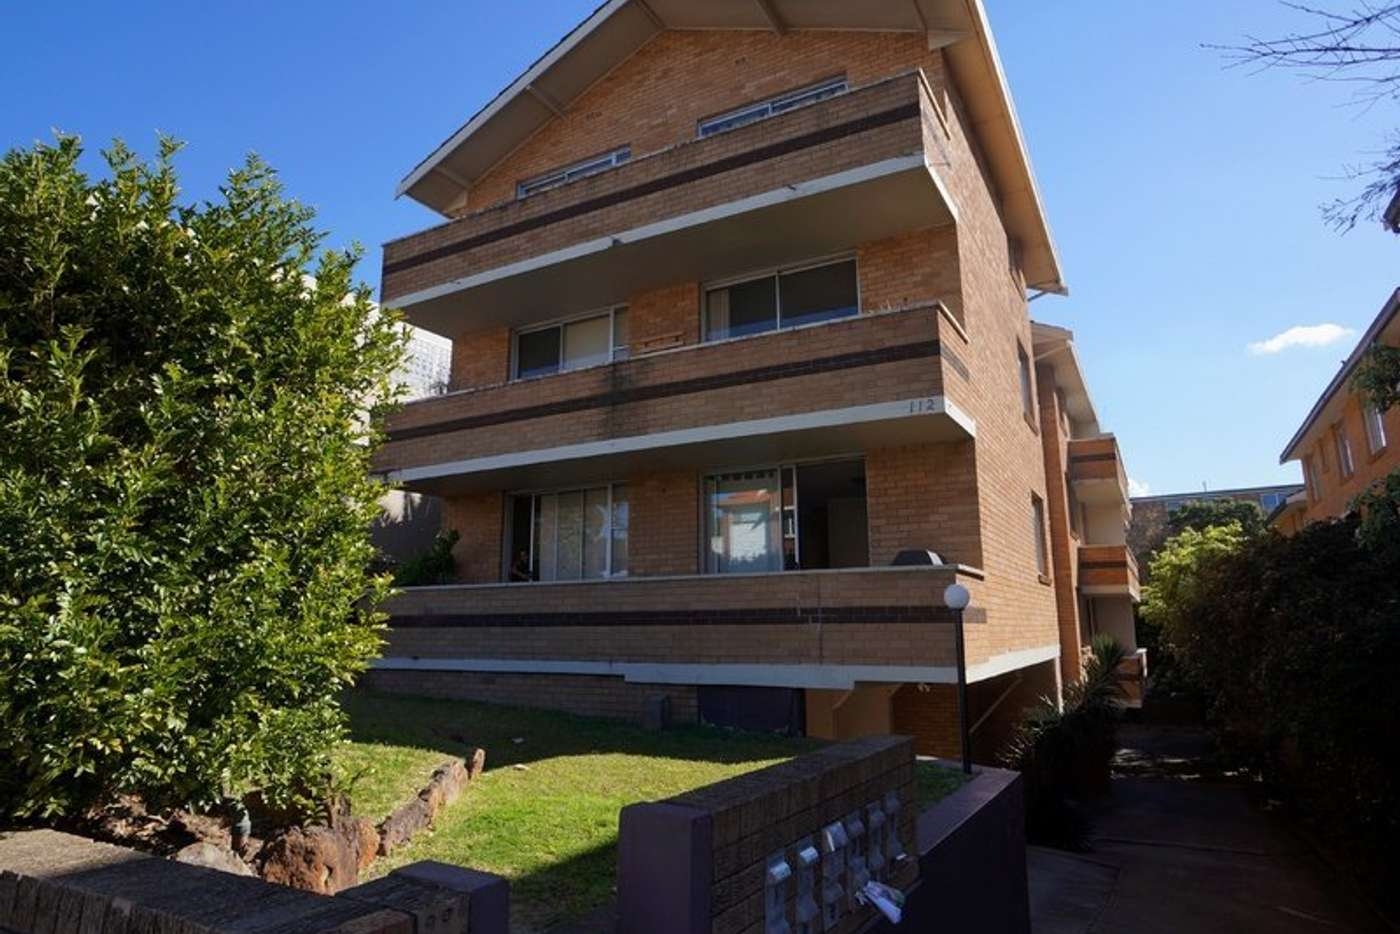 Main view of Homely apartment listing, 8/112 Mount Street, Coogee NSW 2034